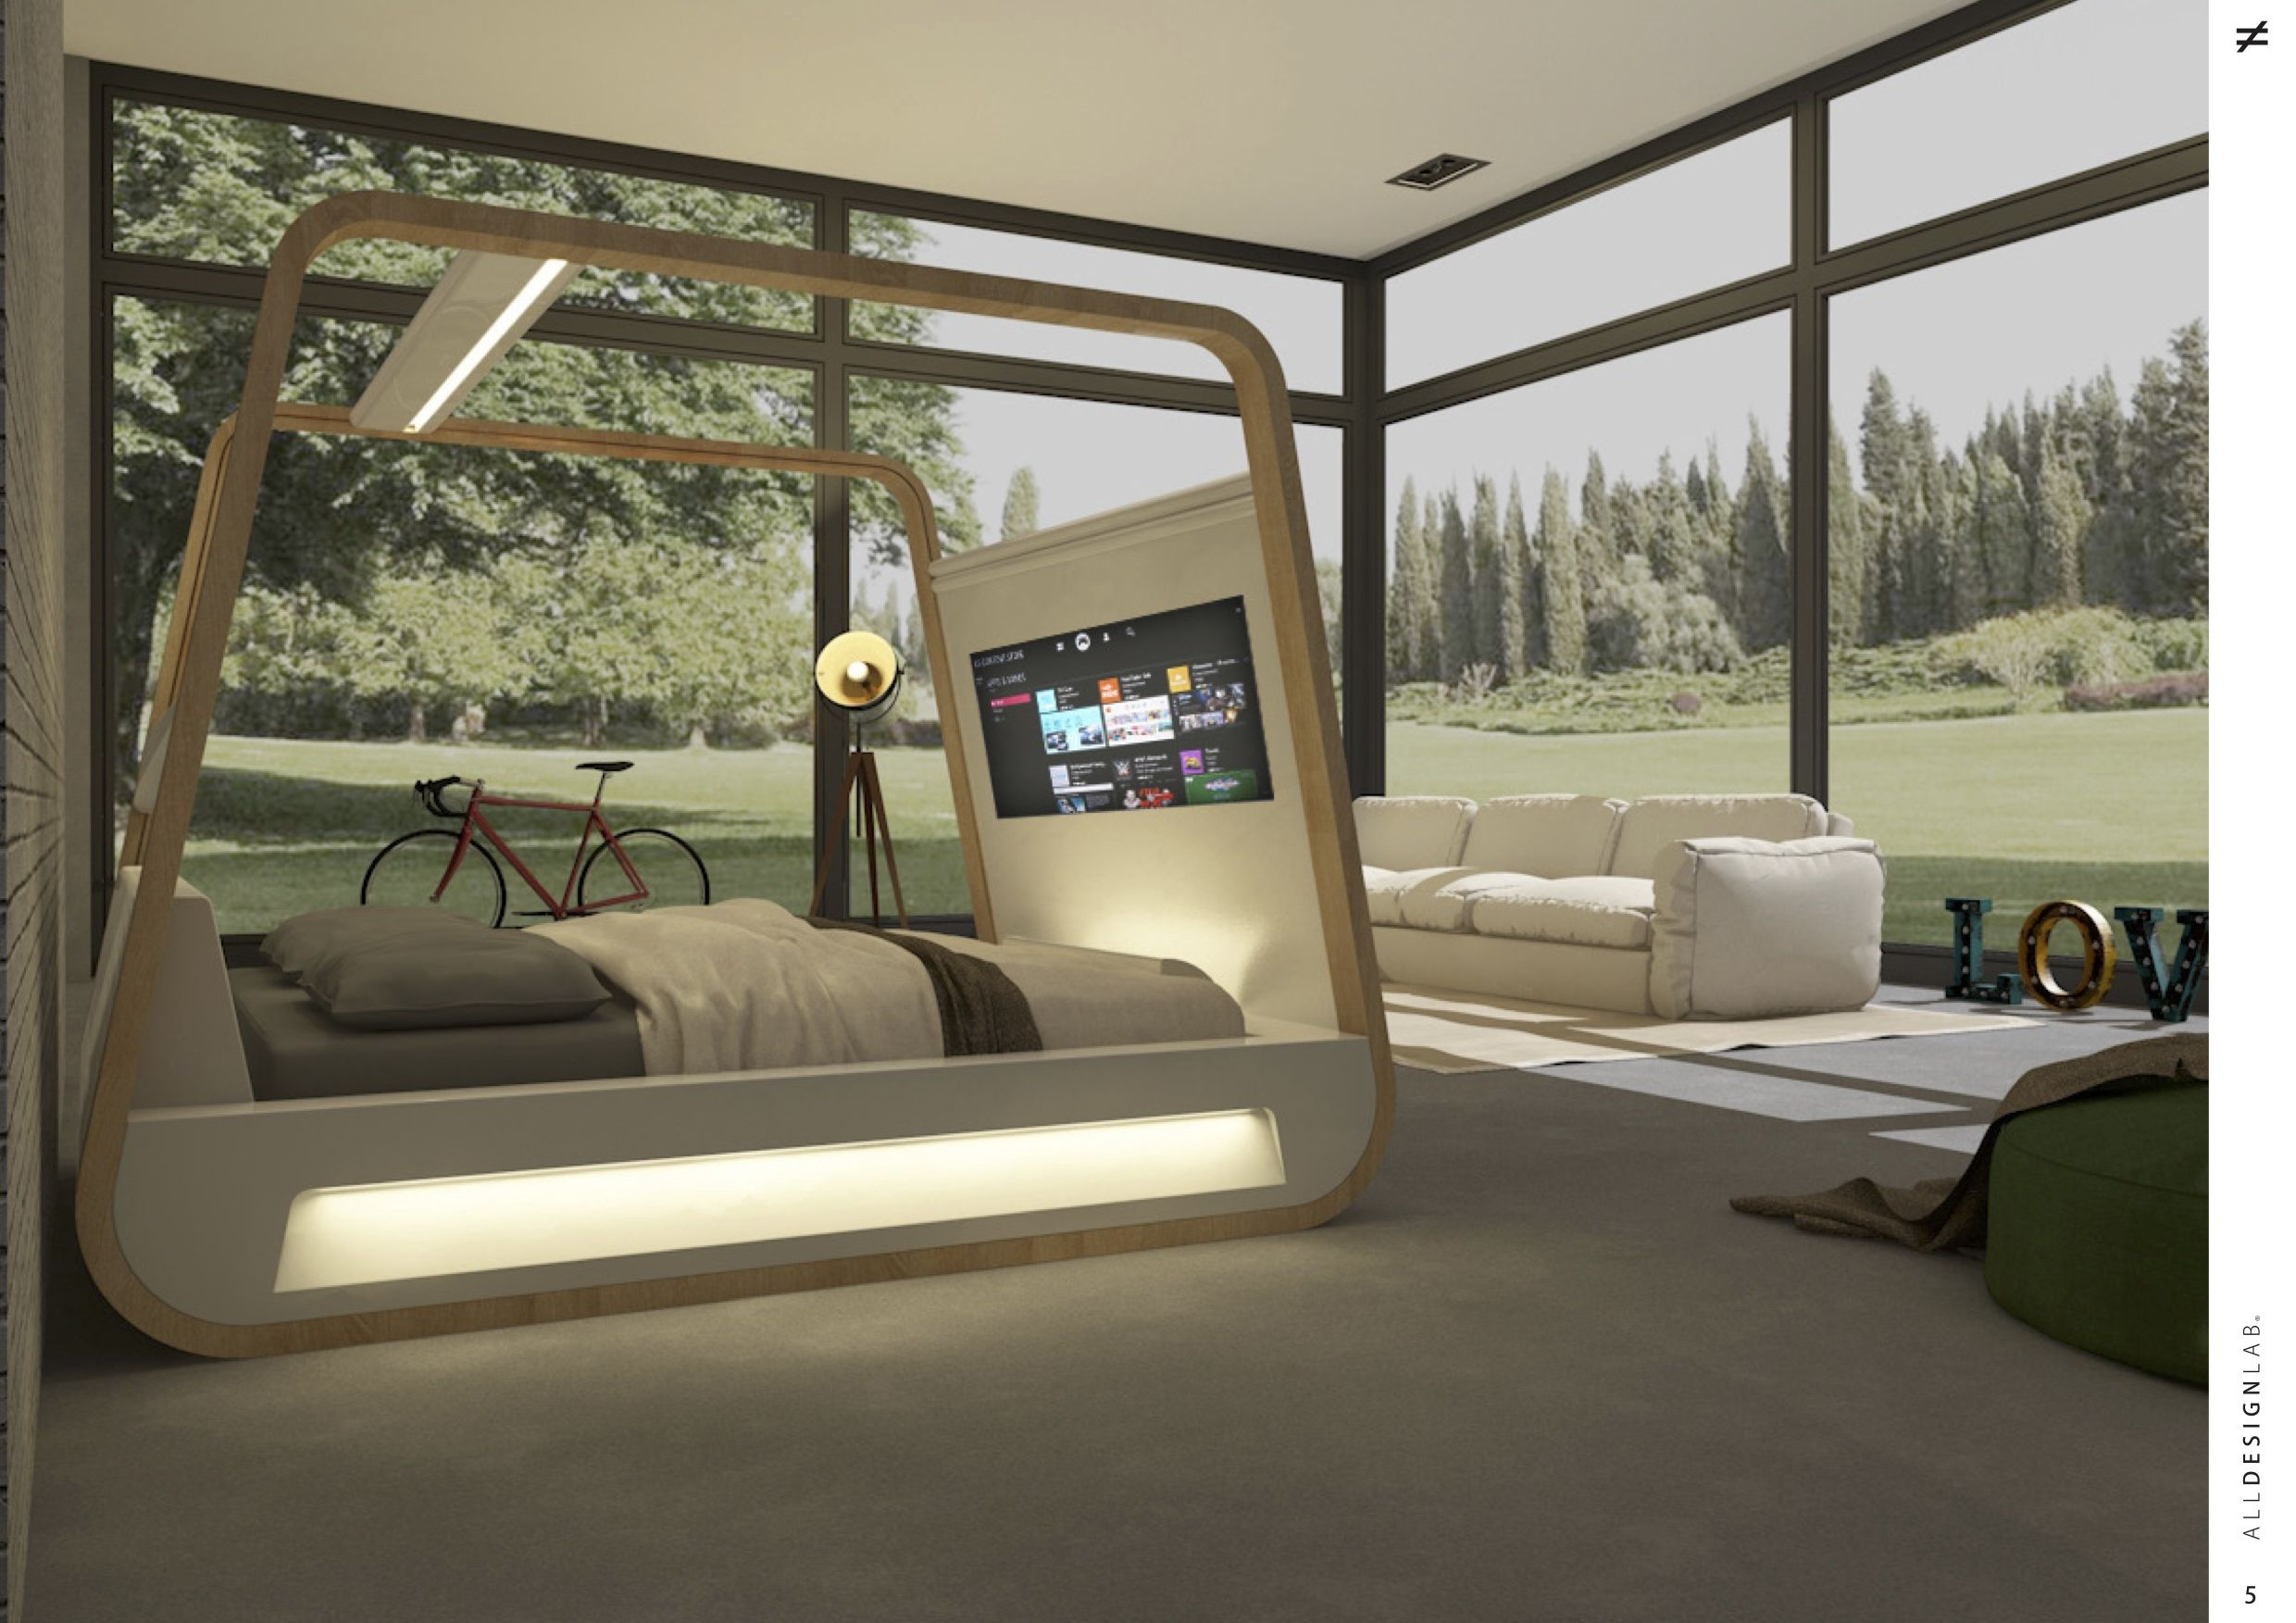 Design Connects Life Smart Design Smart Features Smart Bed